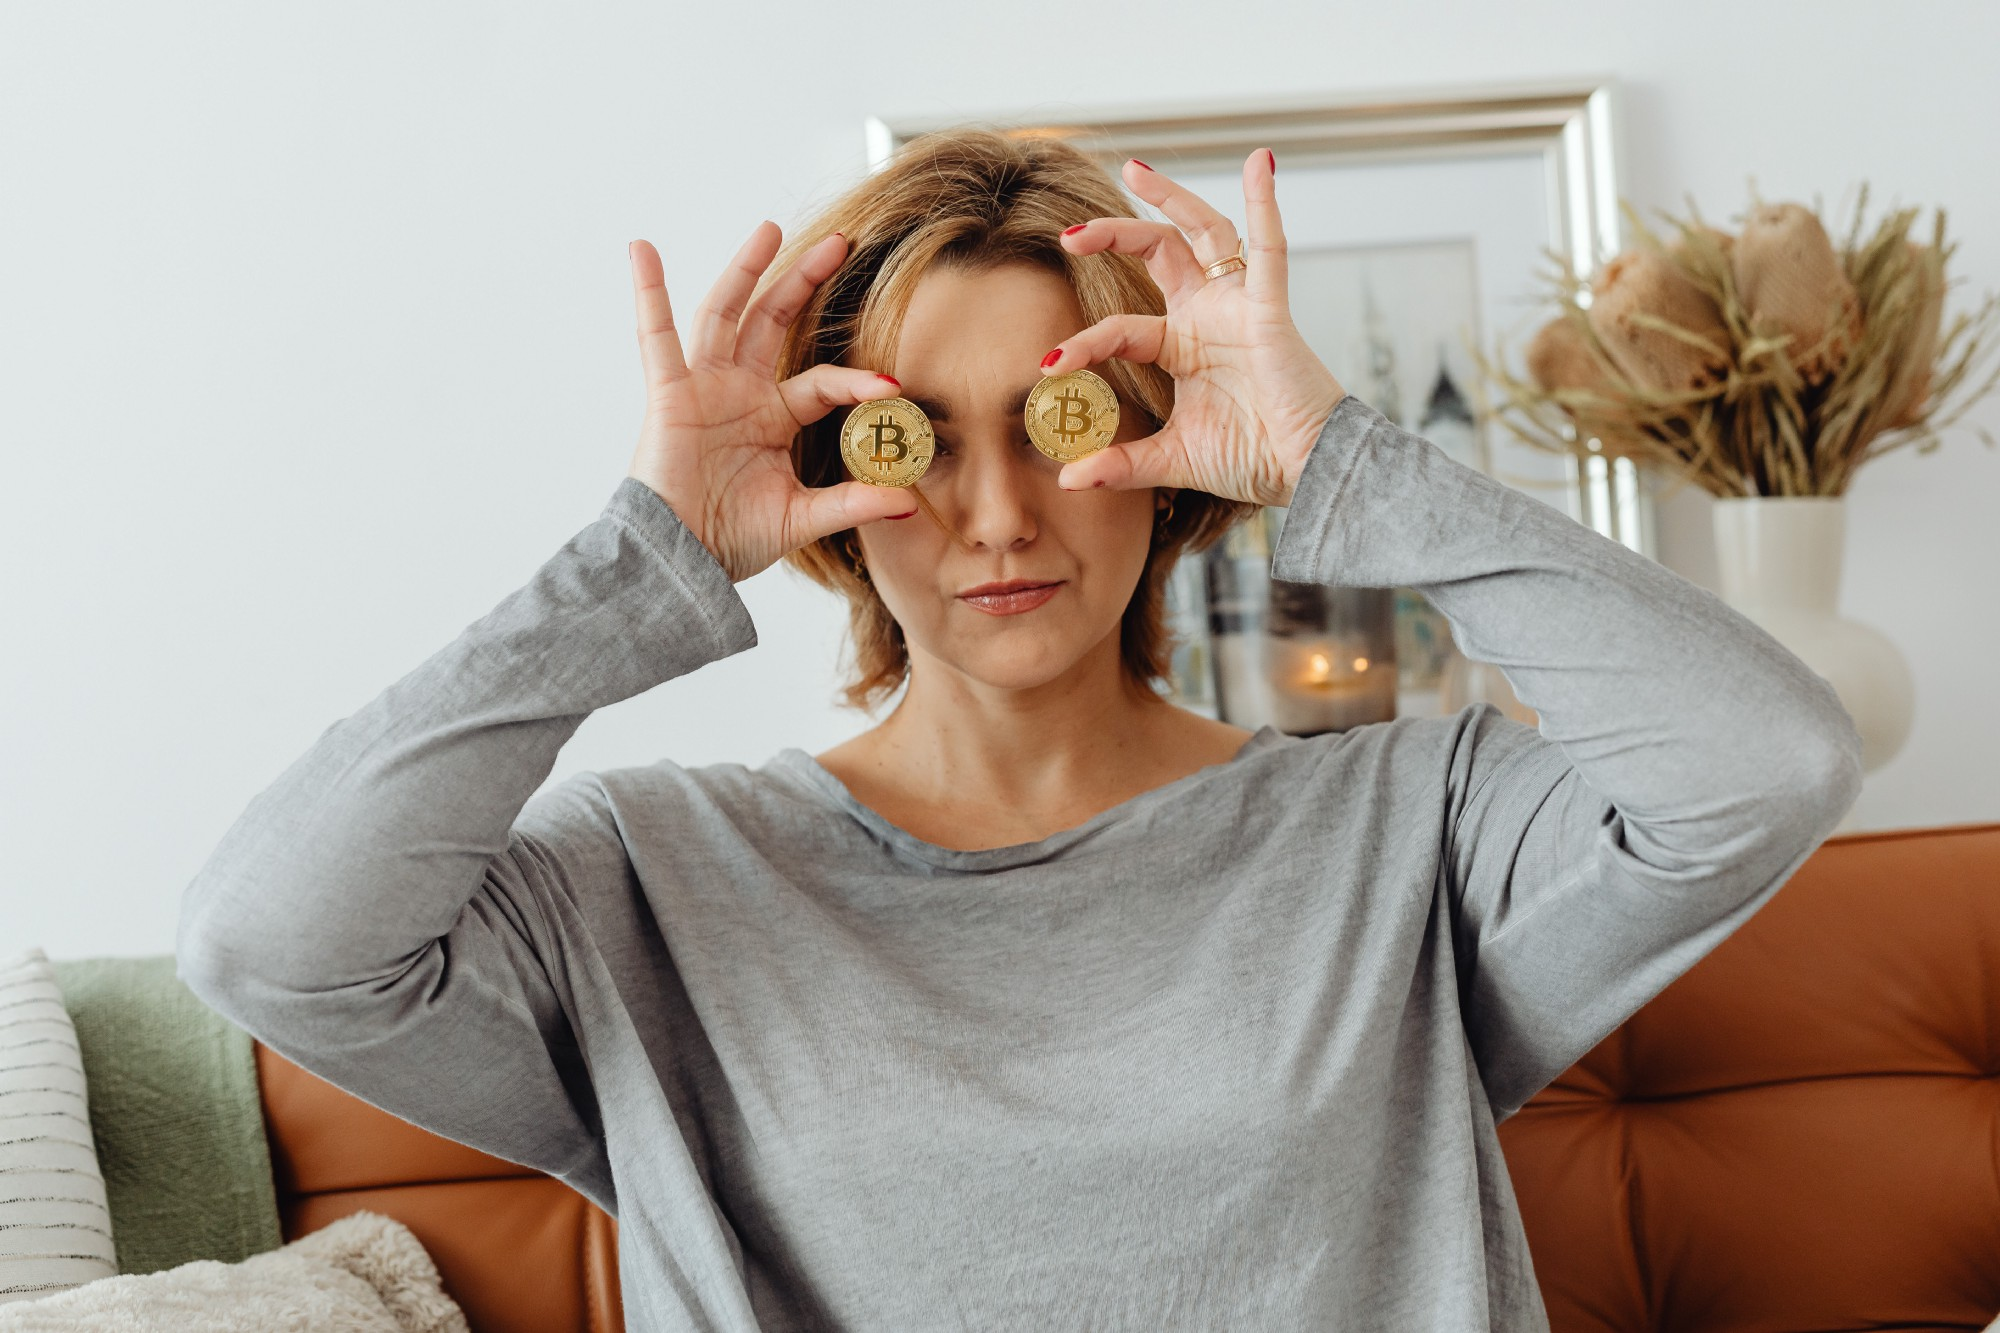 Woman holds a cryptocurrency Bitcoin